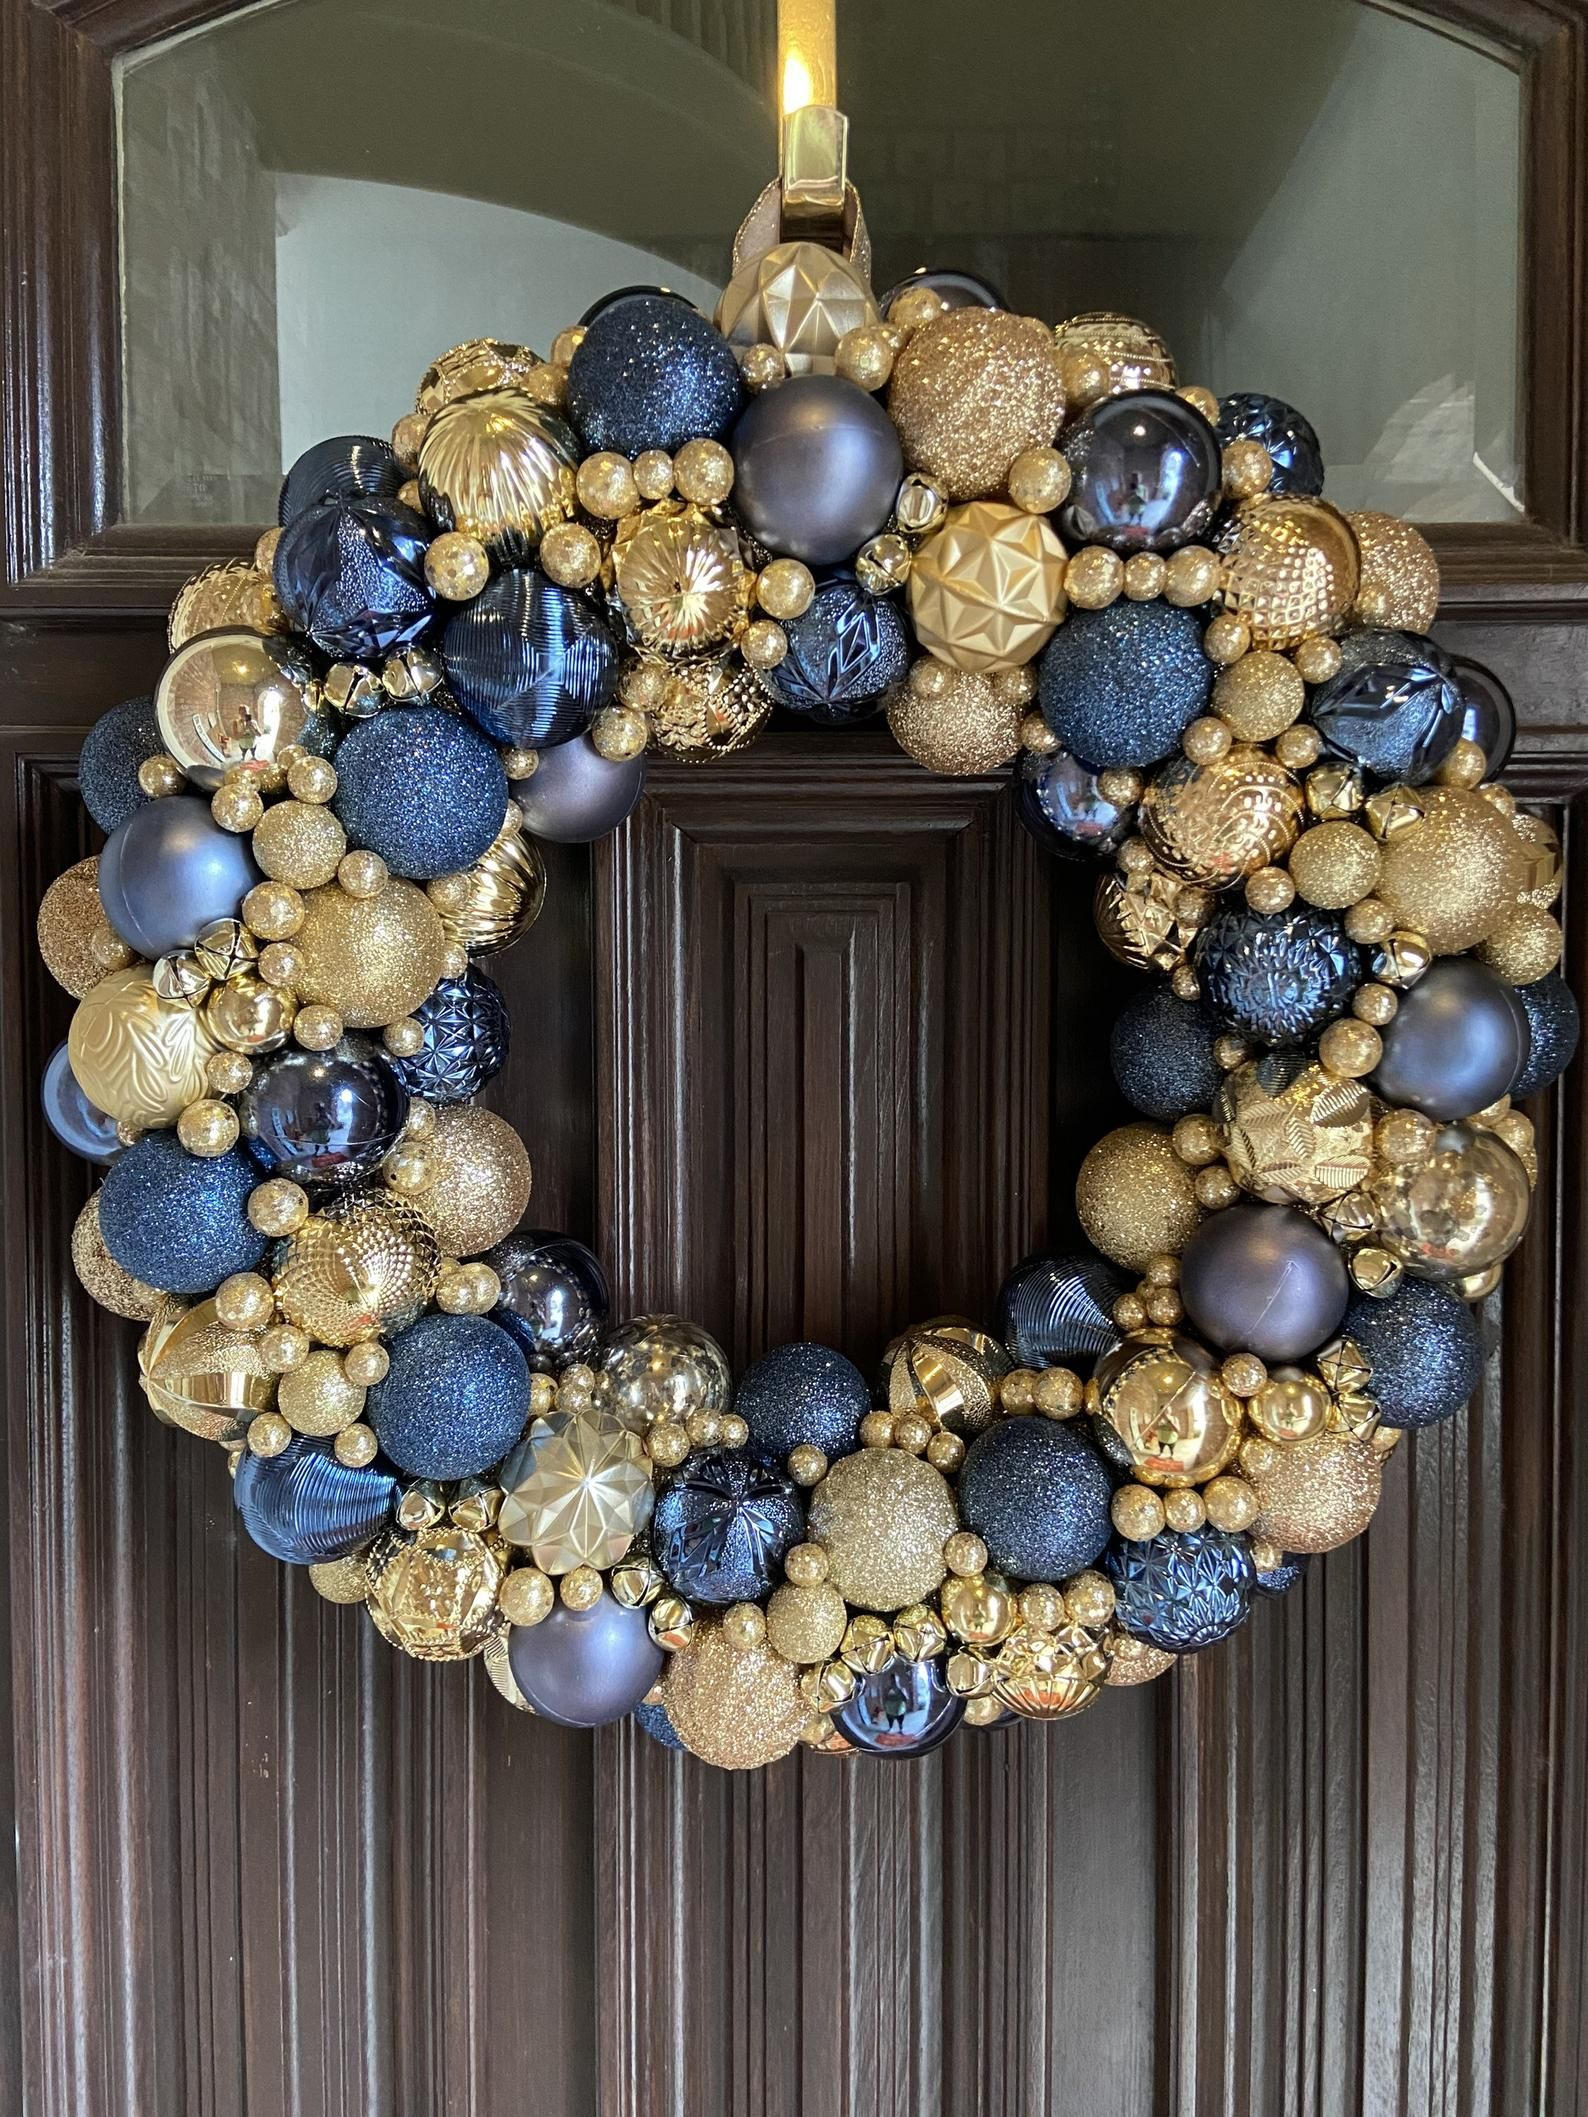 Gorgeous Navy And Gold Ornament Christmas Wreath Bauble Etsy In 2021 Christmas Wreaths Blue Christmas Tree Decorations Christmas Wreaths Diy